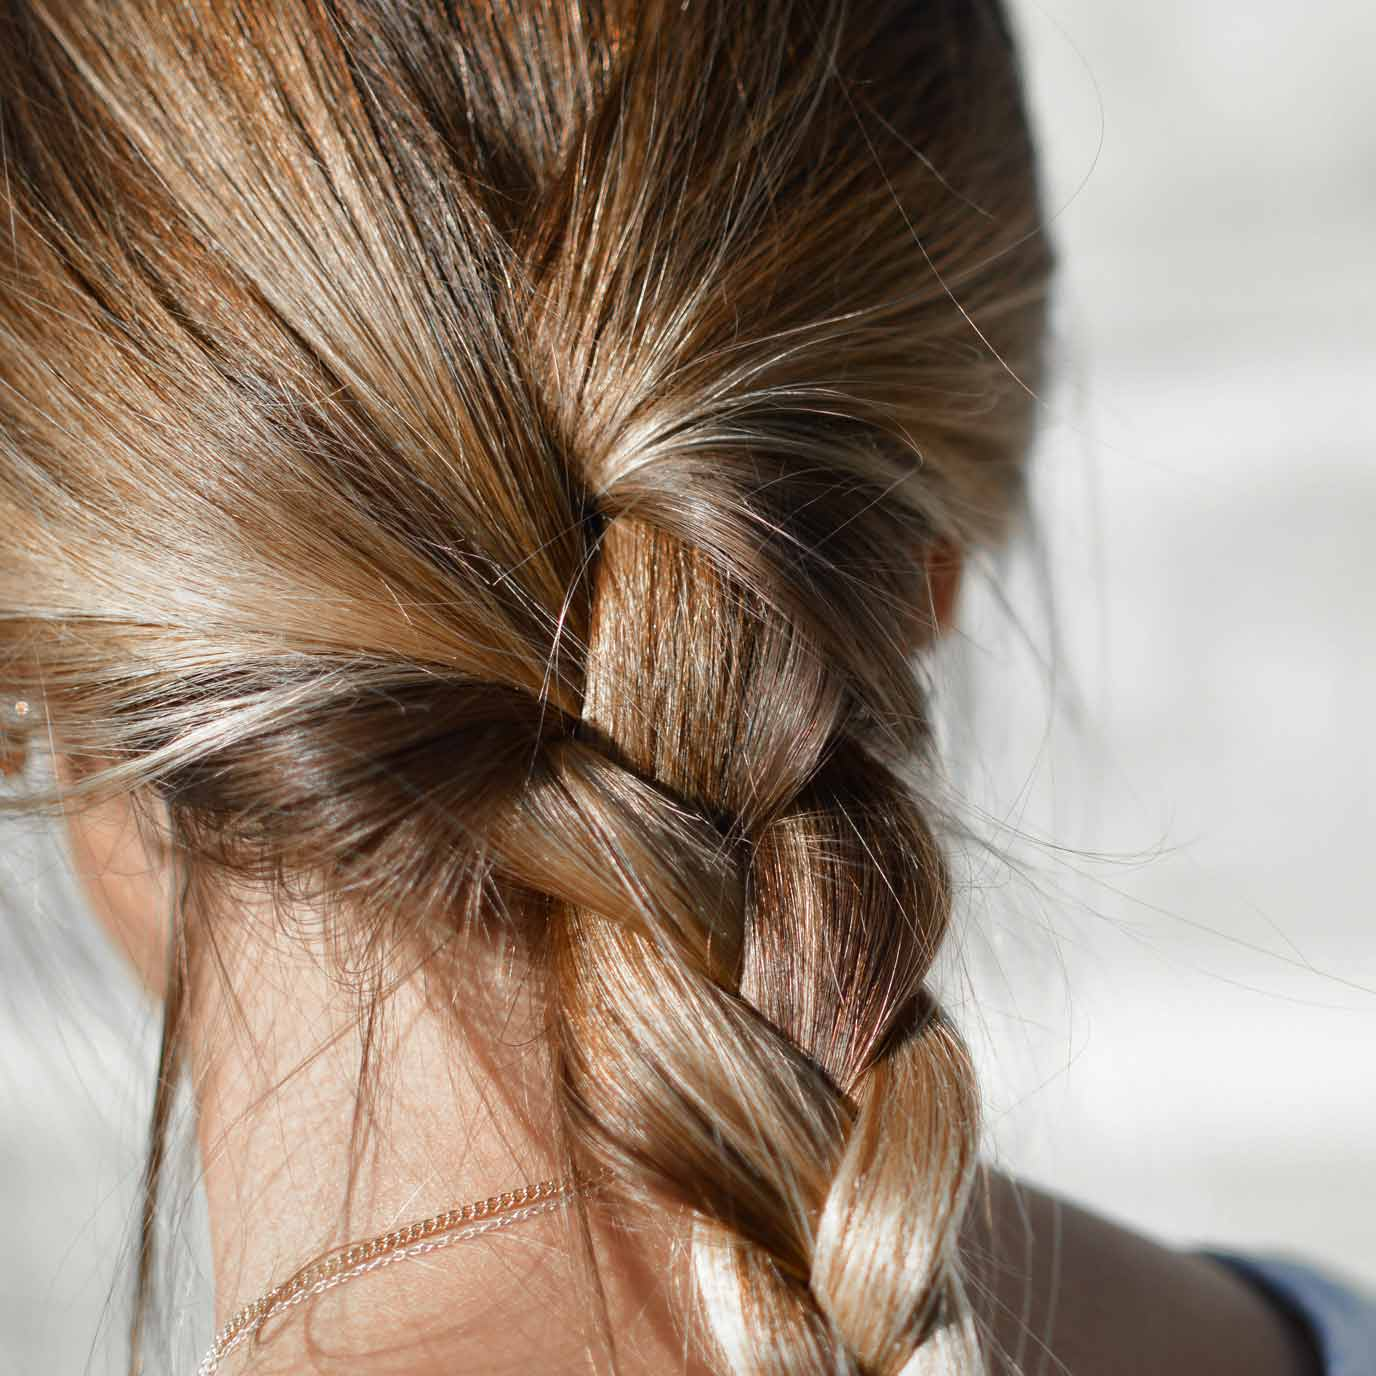 Read about how your hair is affected by fluctuating hormones around perimenopause and menopause